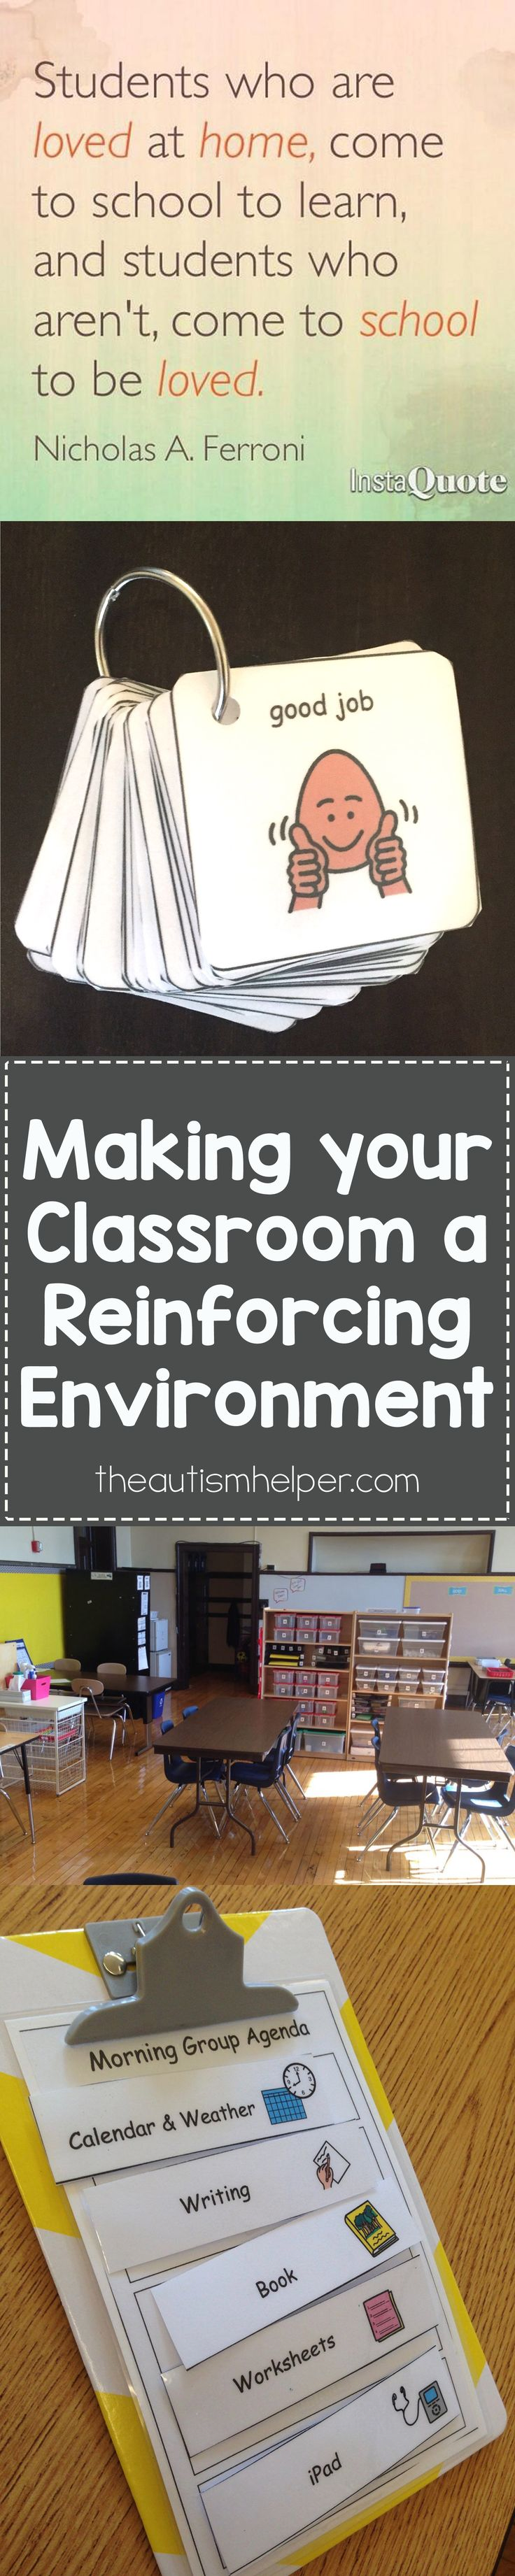 Create a classroom where our students feel safe, loved, & able to communicate & participate in their own way! From theautismhelper.com #theautismhelper